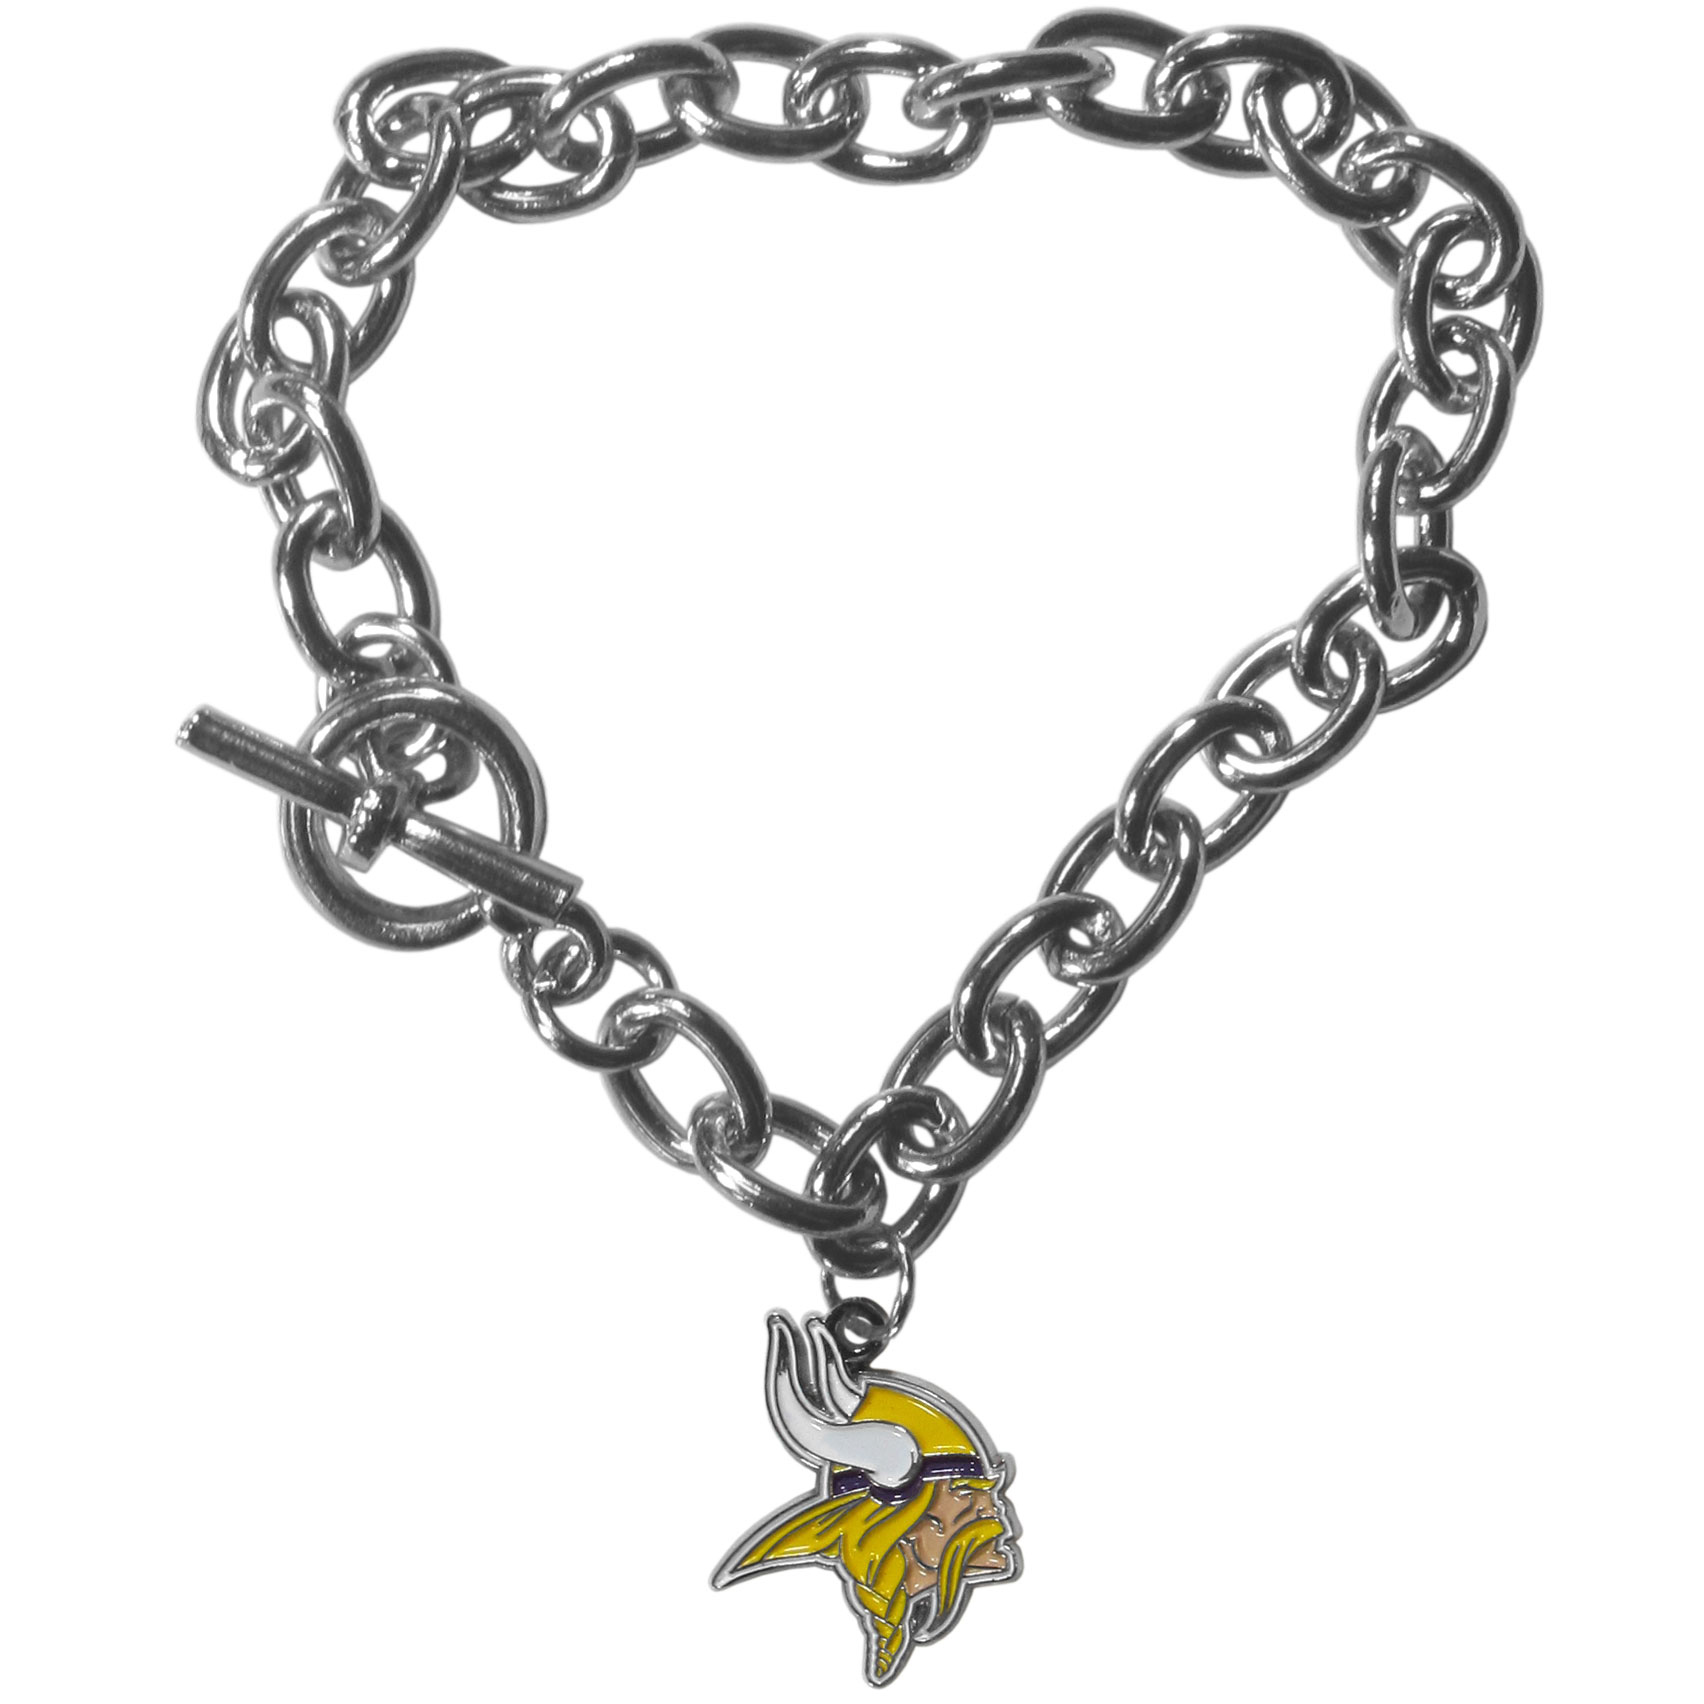 Minnesota Vikings Charm Chain Bracelets - Our classic single charm bracelet is a great way to show off your team pride! The 7.5 inch large link chain features a high polish Minnesota Vikings charm and features a toggle clasp which makes it super easy to take on and off. Officially licensed NFL product Licensee: Siskiyou Buckle .com